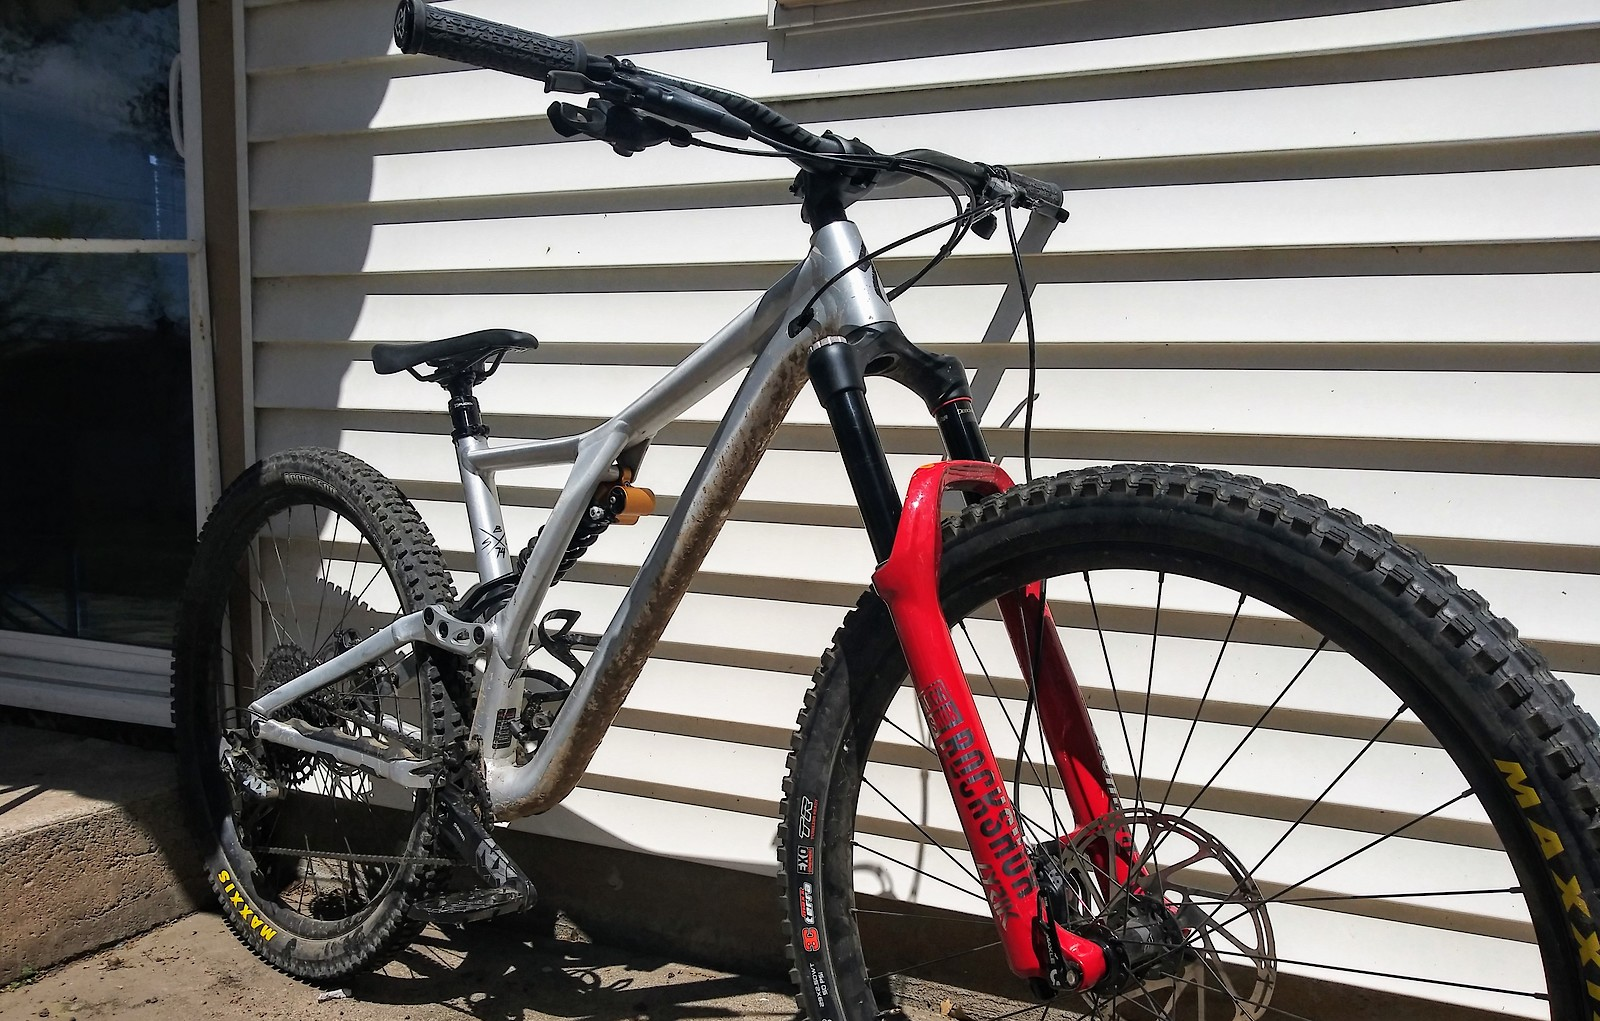 Specialized Stumpjumper evo double coil